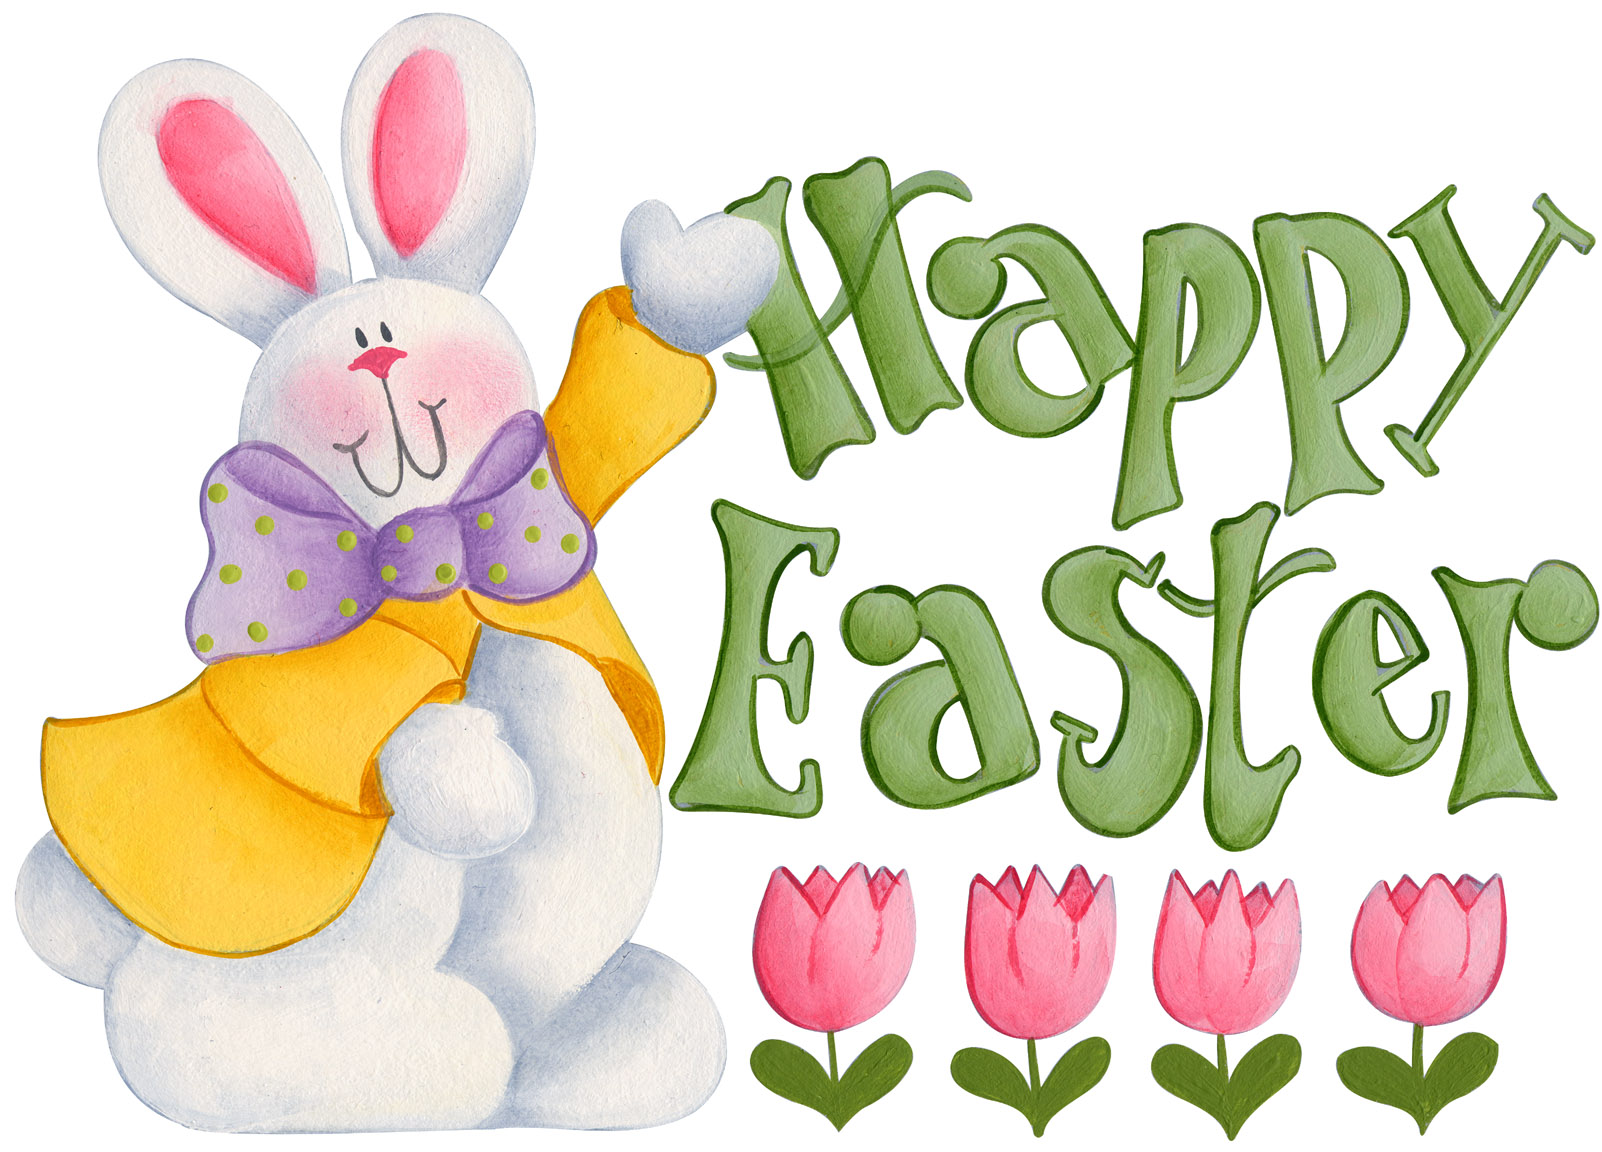 Description easter bunny wallpaper is a hi res wallpaper for pc